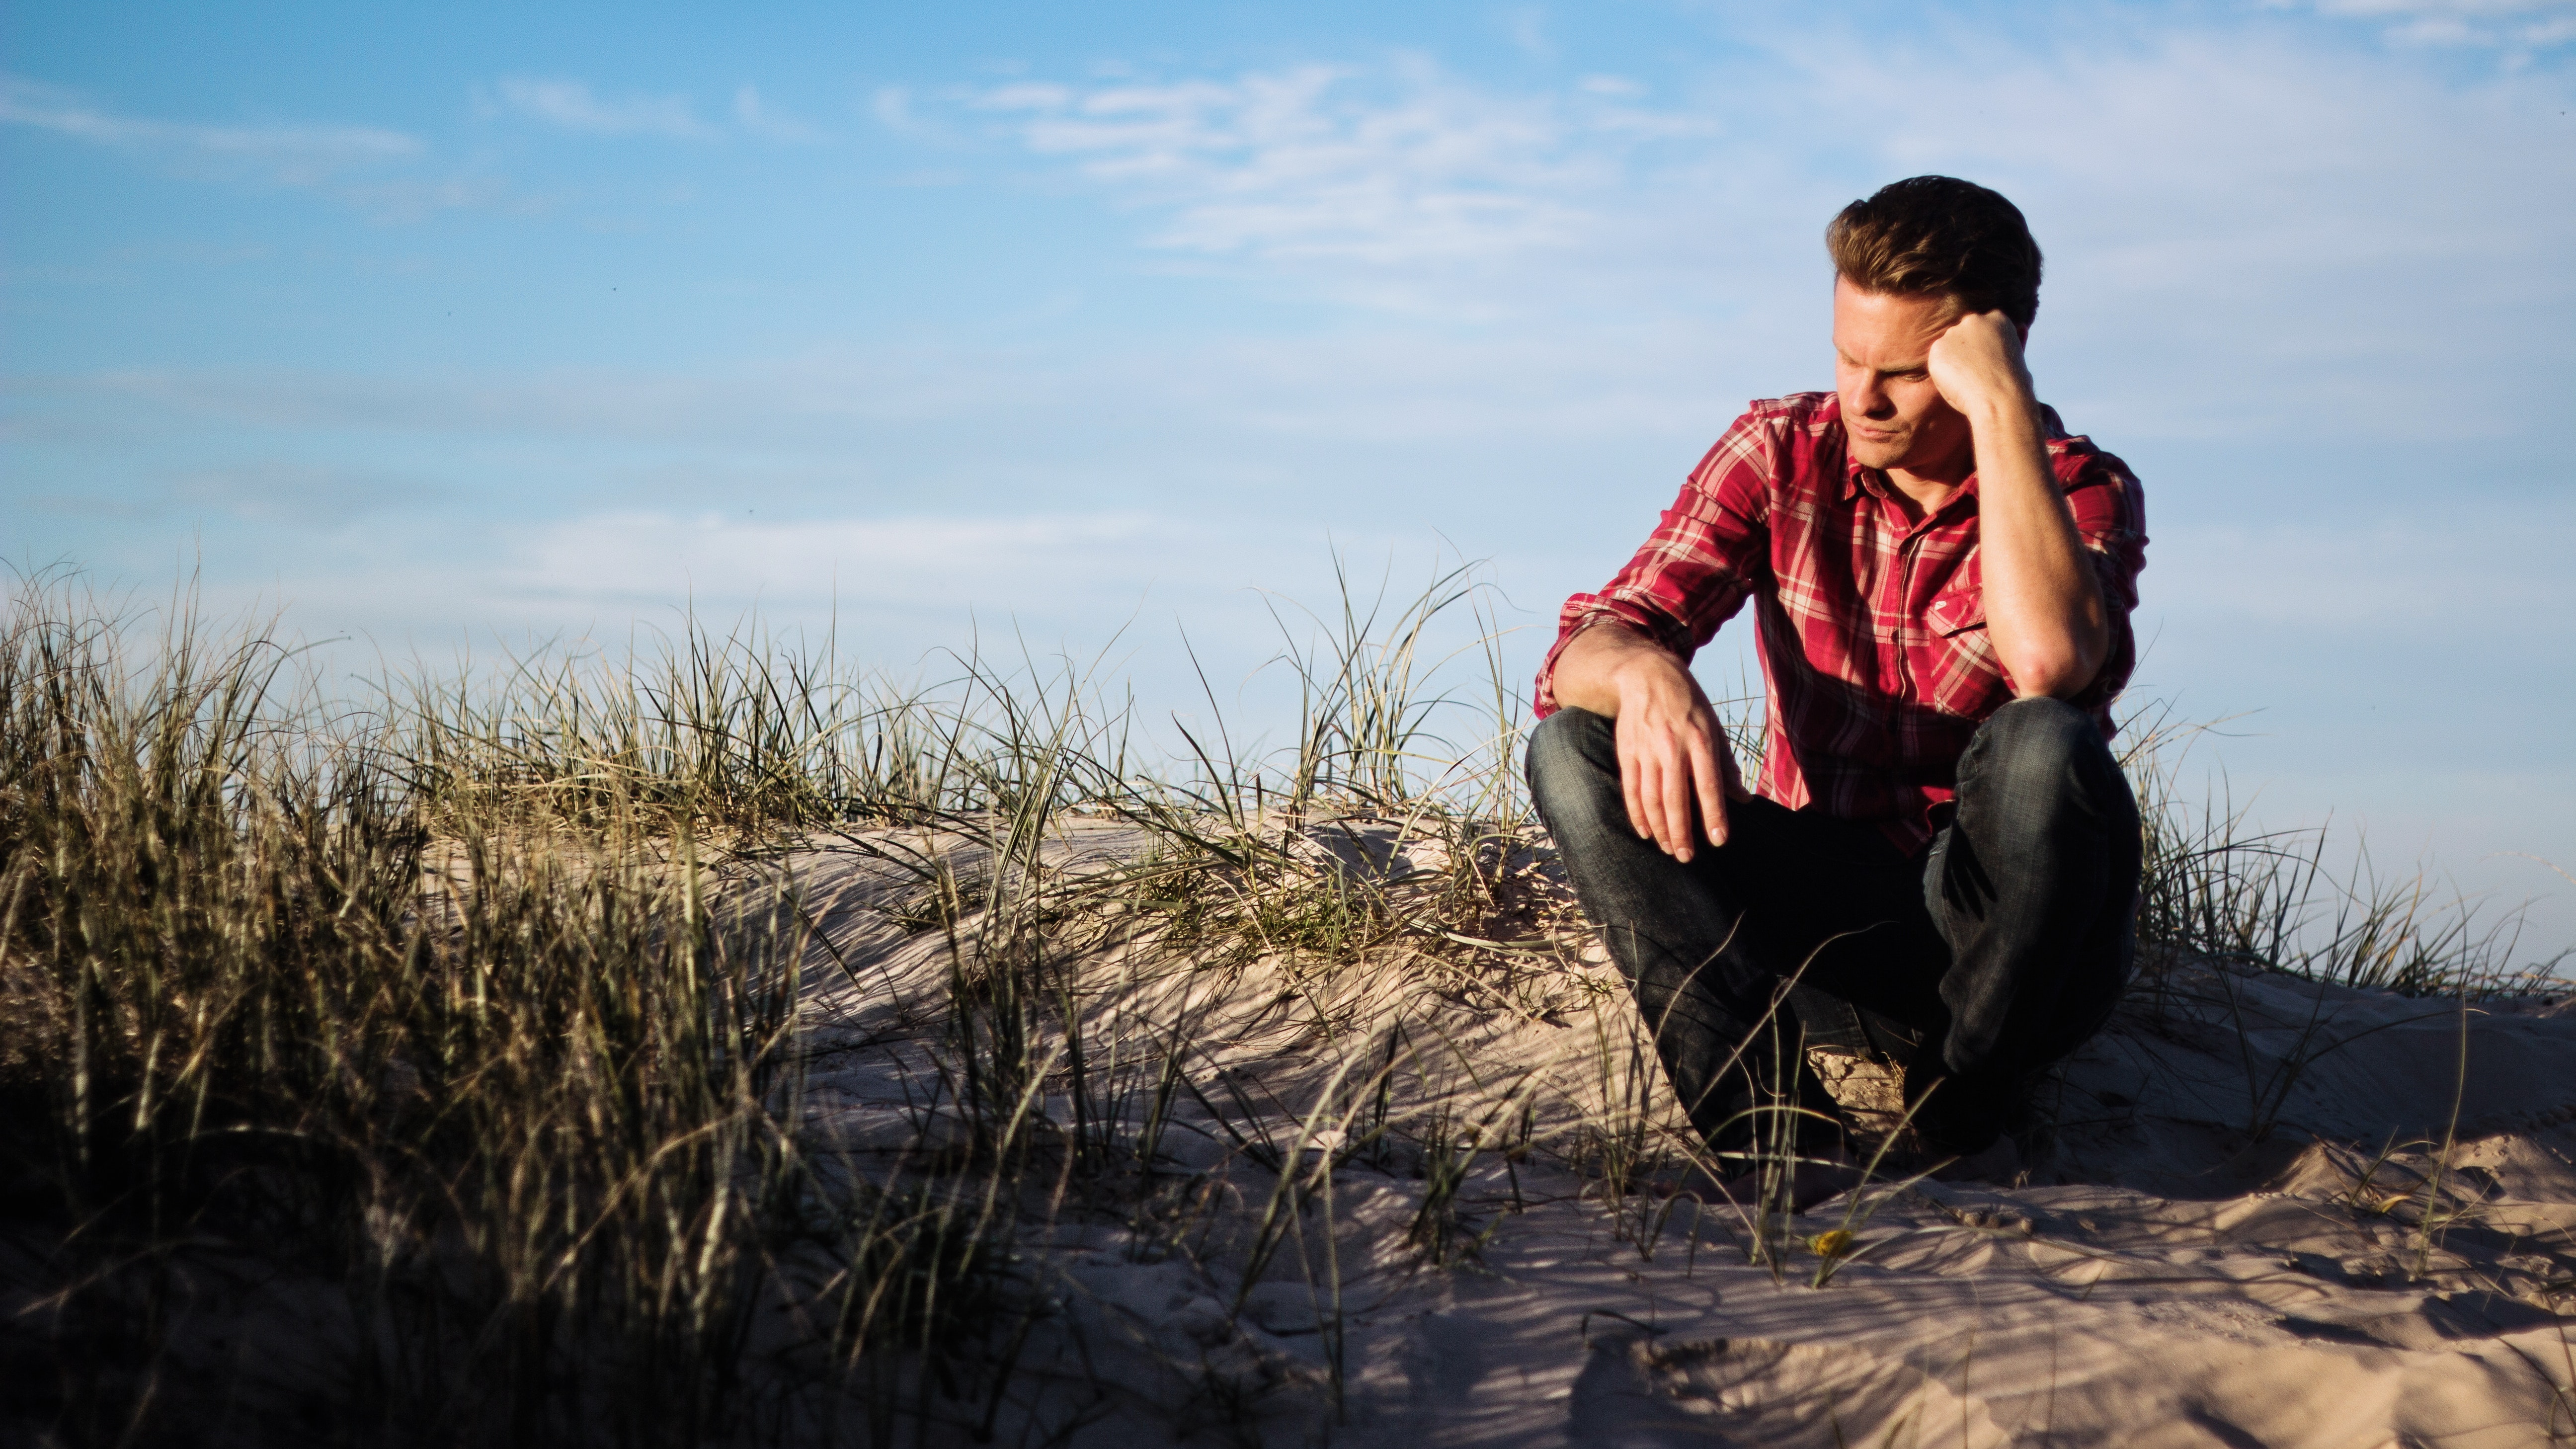 Man questioning about finding purpose in life